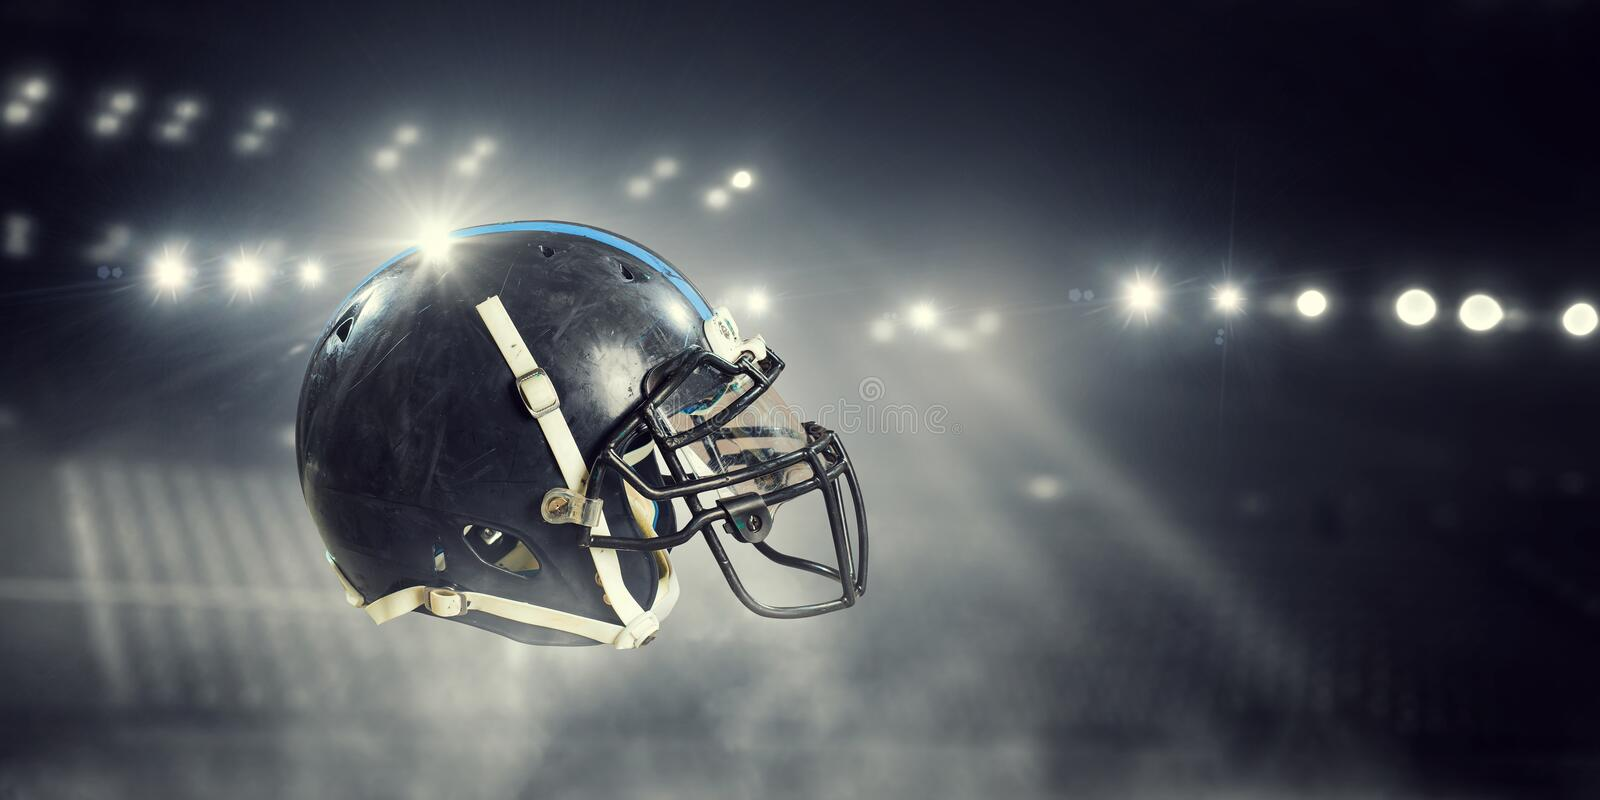 It is game time. Mixed media. American football helmet against rugby stadium. Mixed media stock photo